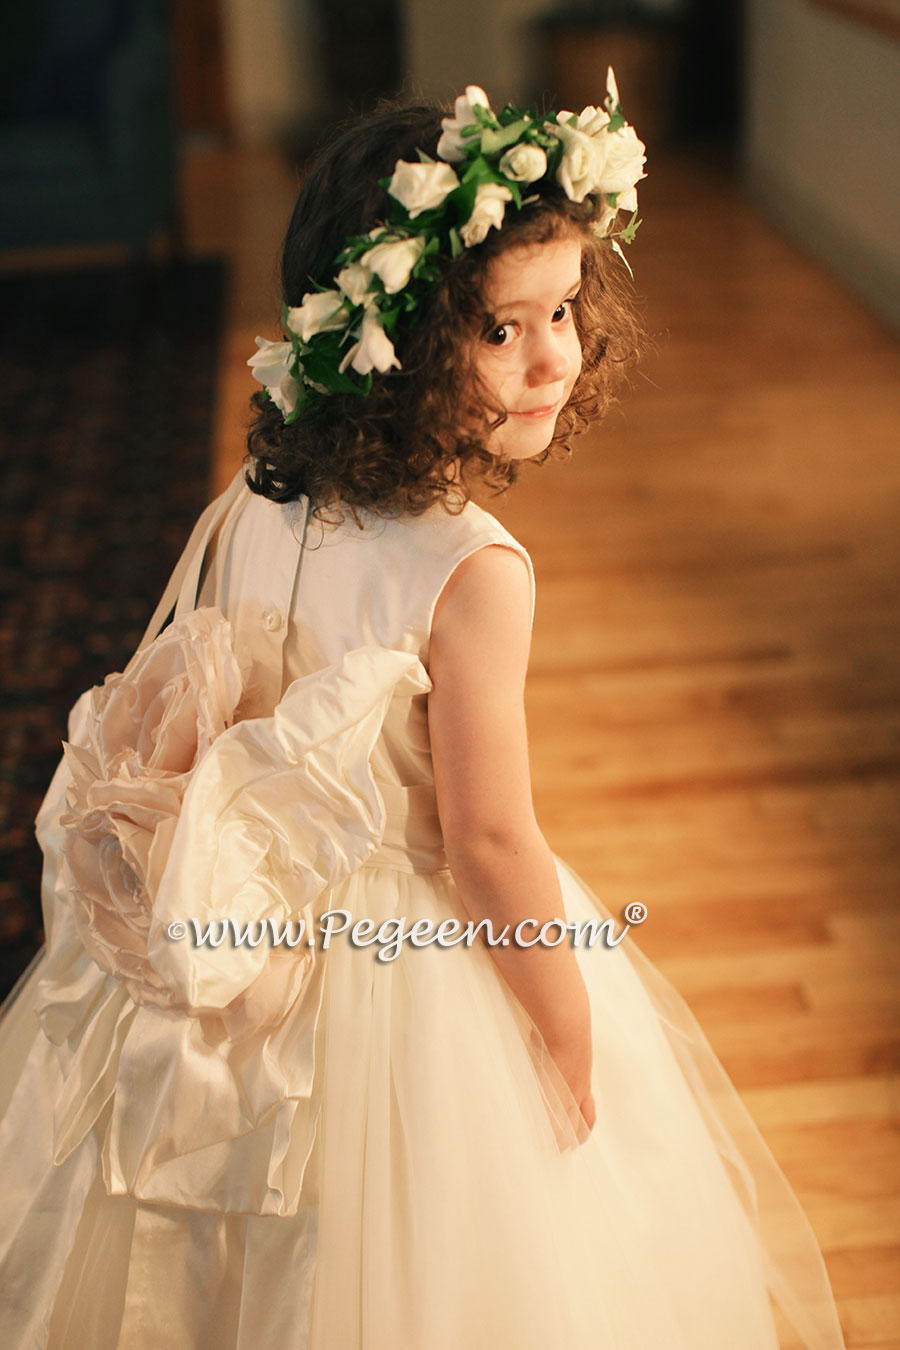 New Ivory Silk and Tulle Flower Girl Dress - Pegeen Style 402 with Signature Bustle